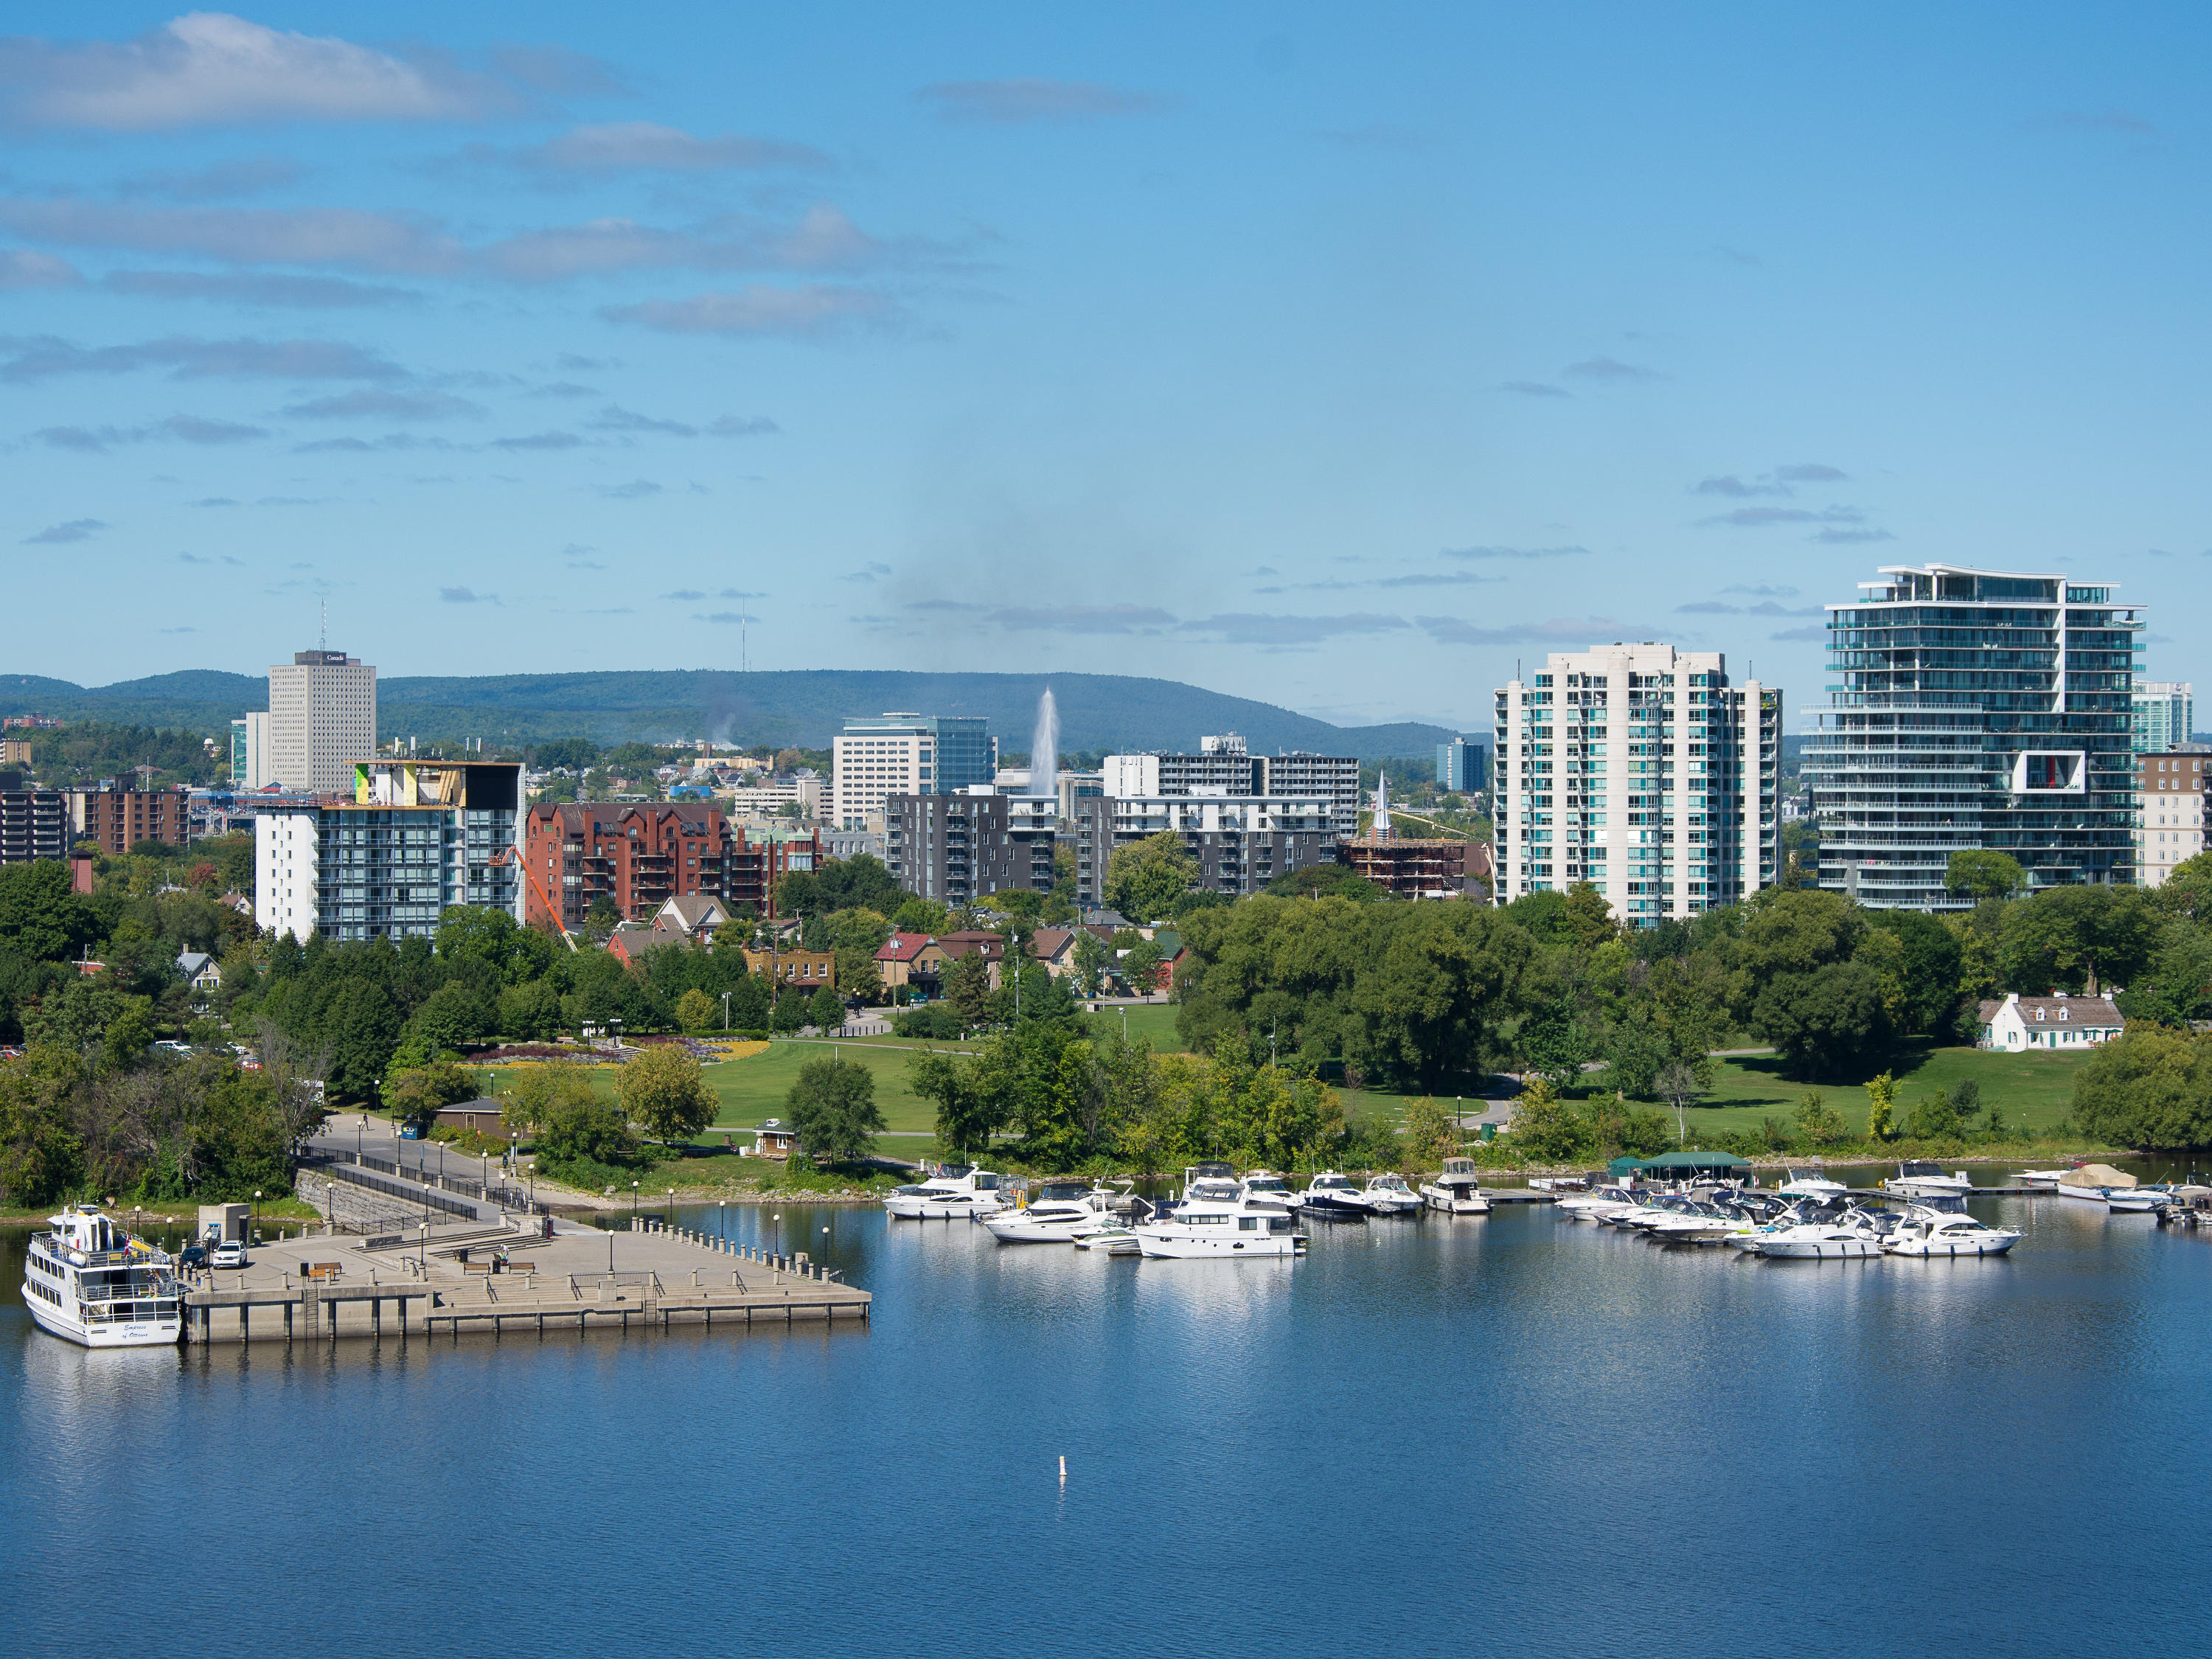 gatineau qc_CorporateStays Grows Signature Collection in Gatineau, QC | Newswire